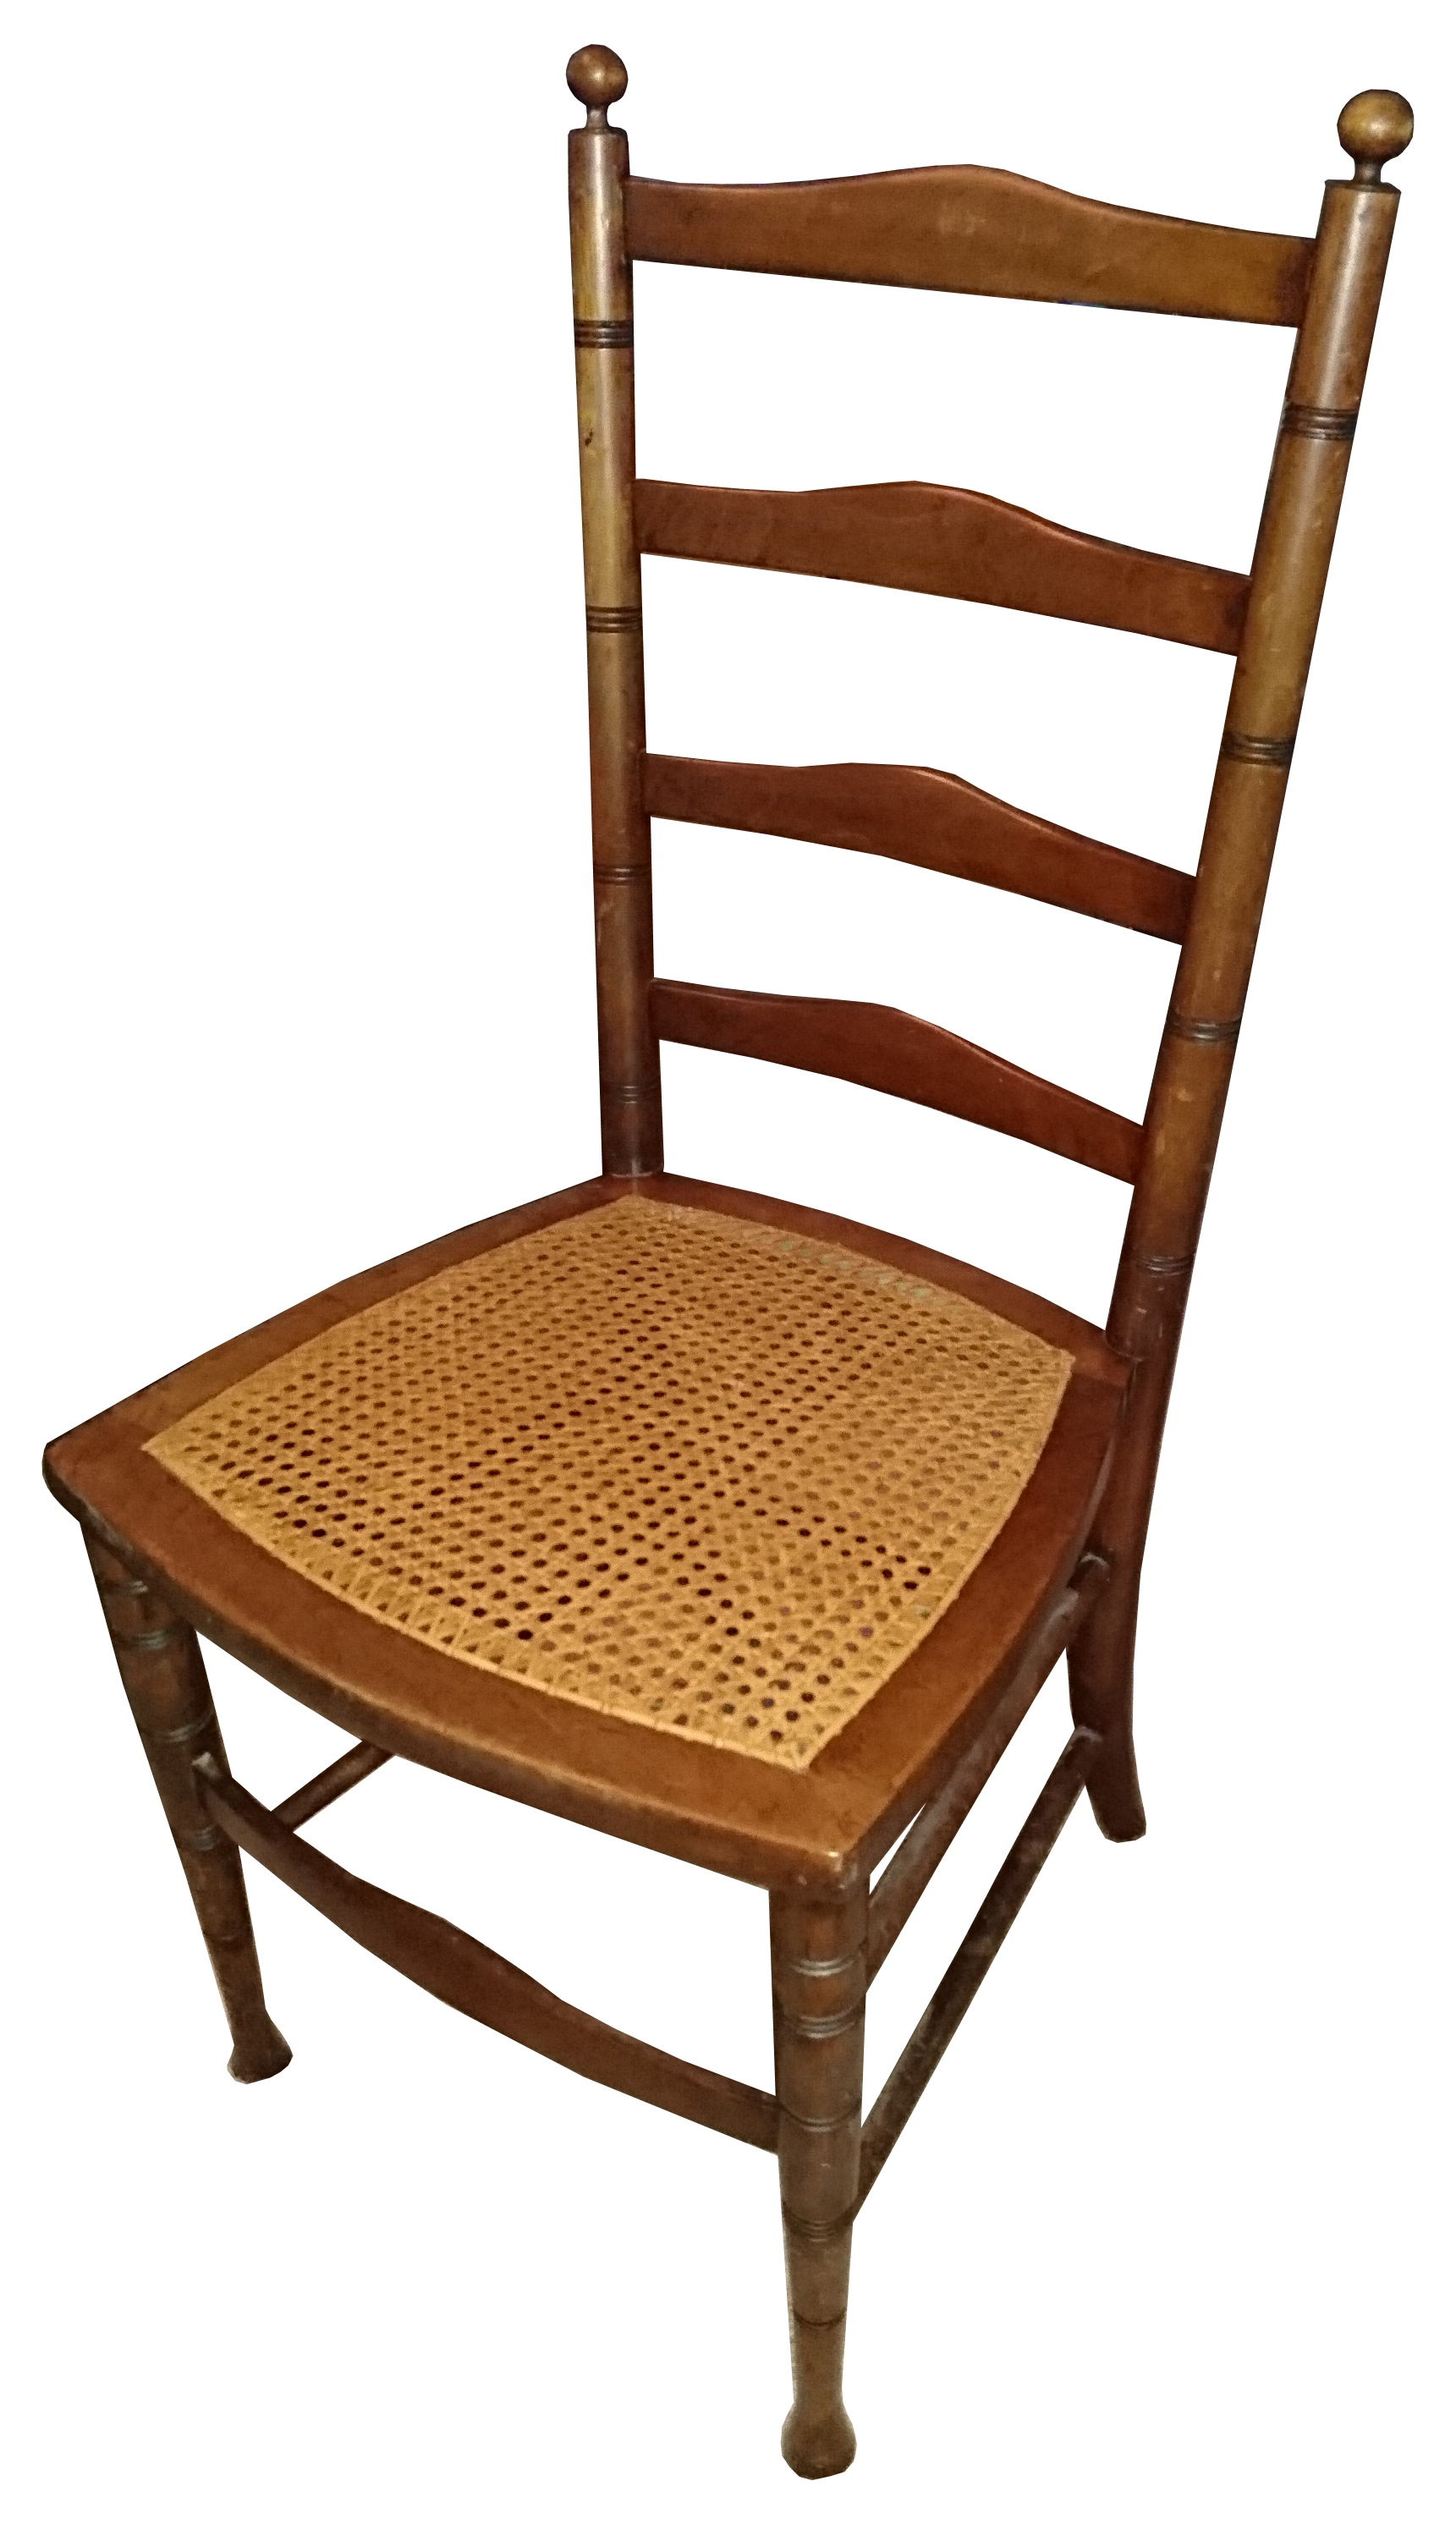 Collinson and Locke chair